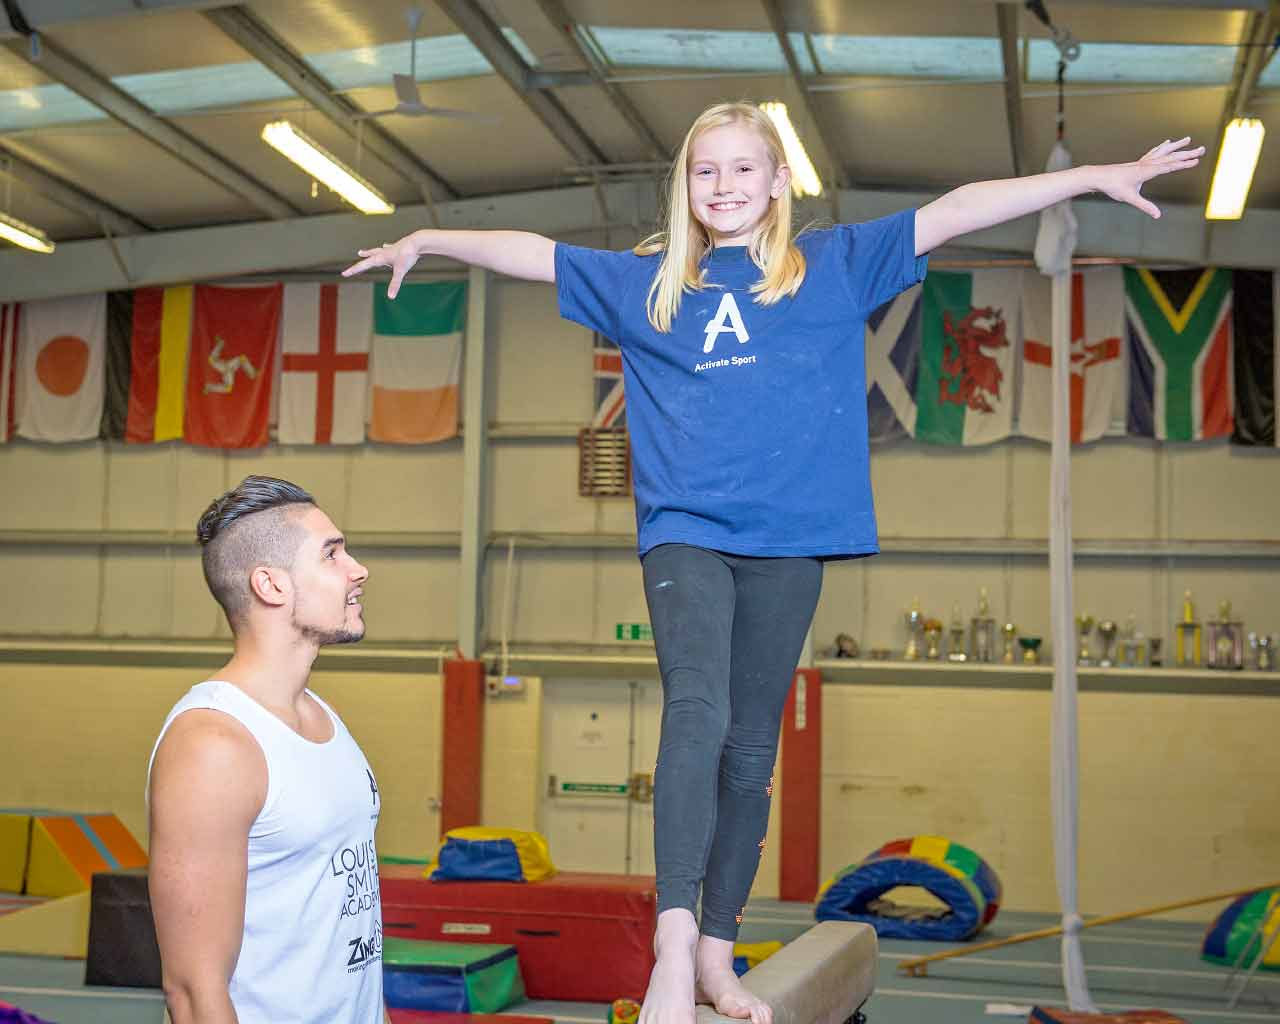 Louis Smith Gymnastics Experience